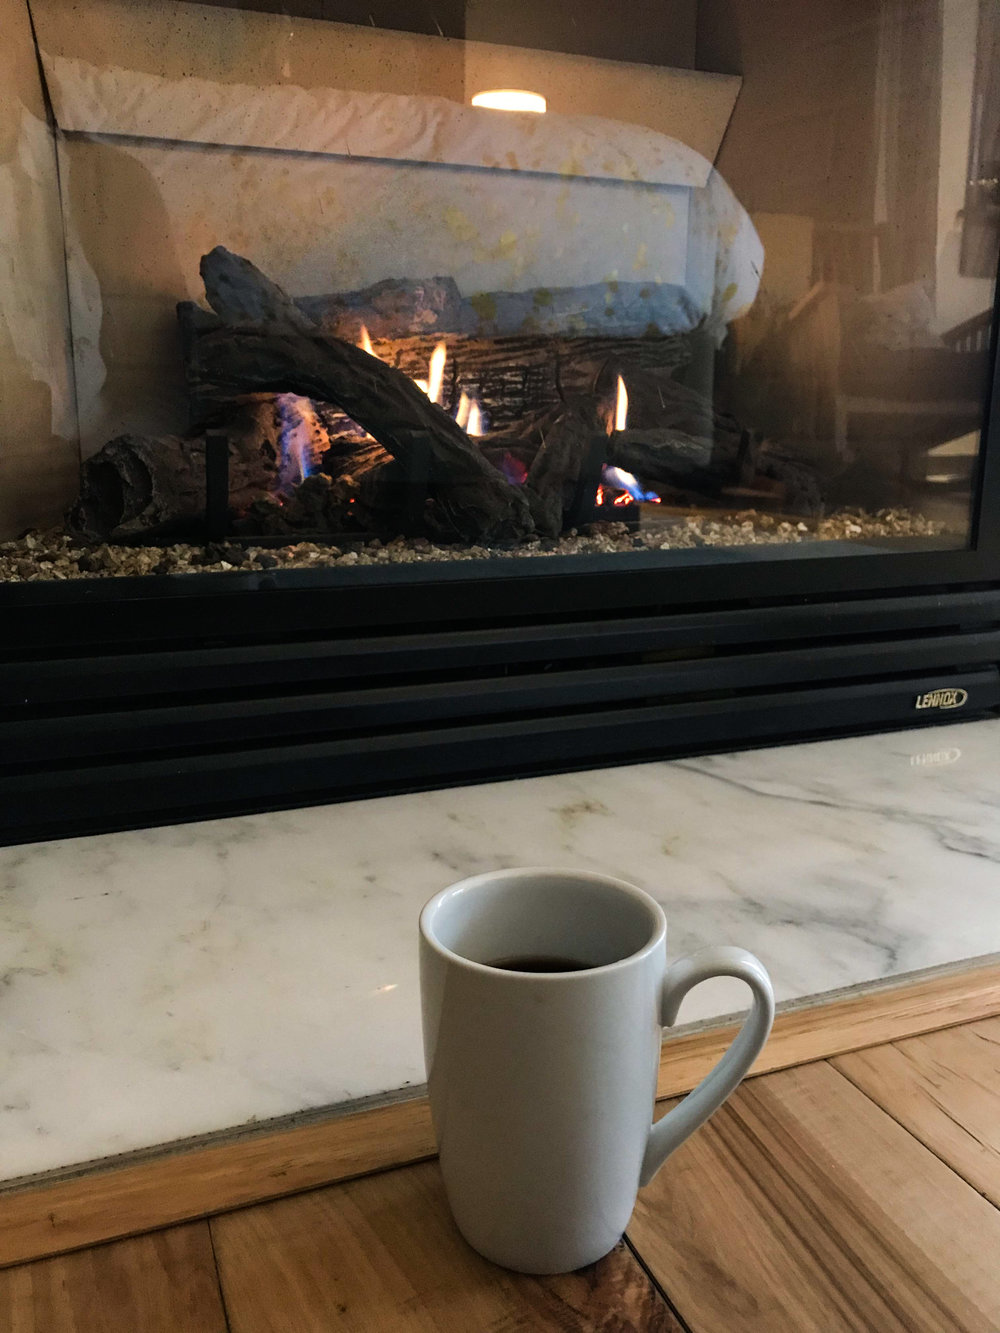 It was nice to wake up every morning to coffee and a fireplace in the bedroom.